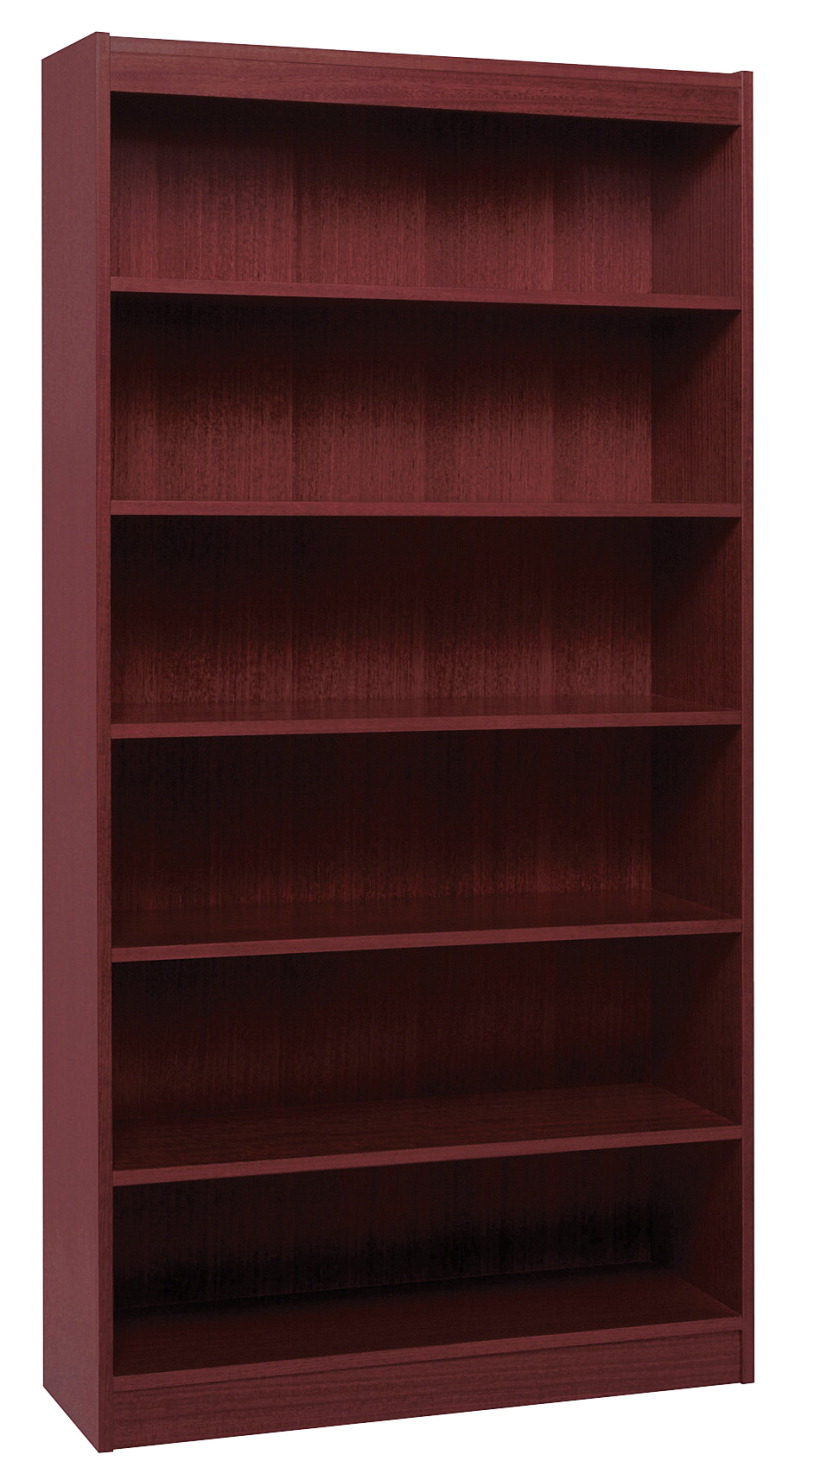 Classroom Select Bookcase, 6 Shelves, 36 x 12 x 72 Inches, Wood Veneer, Various Options